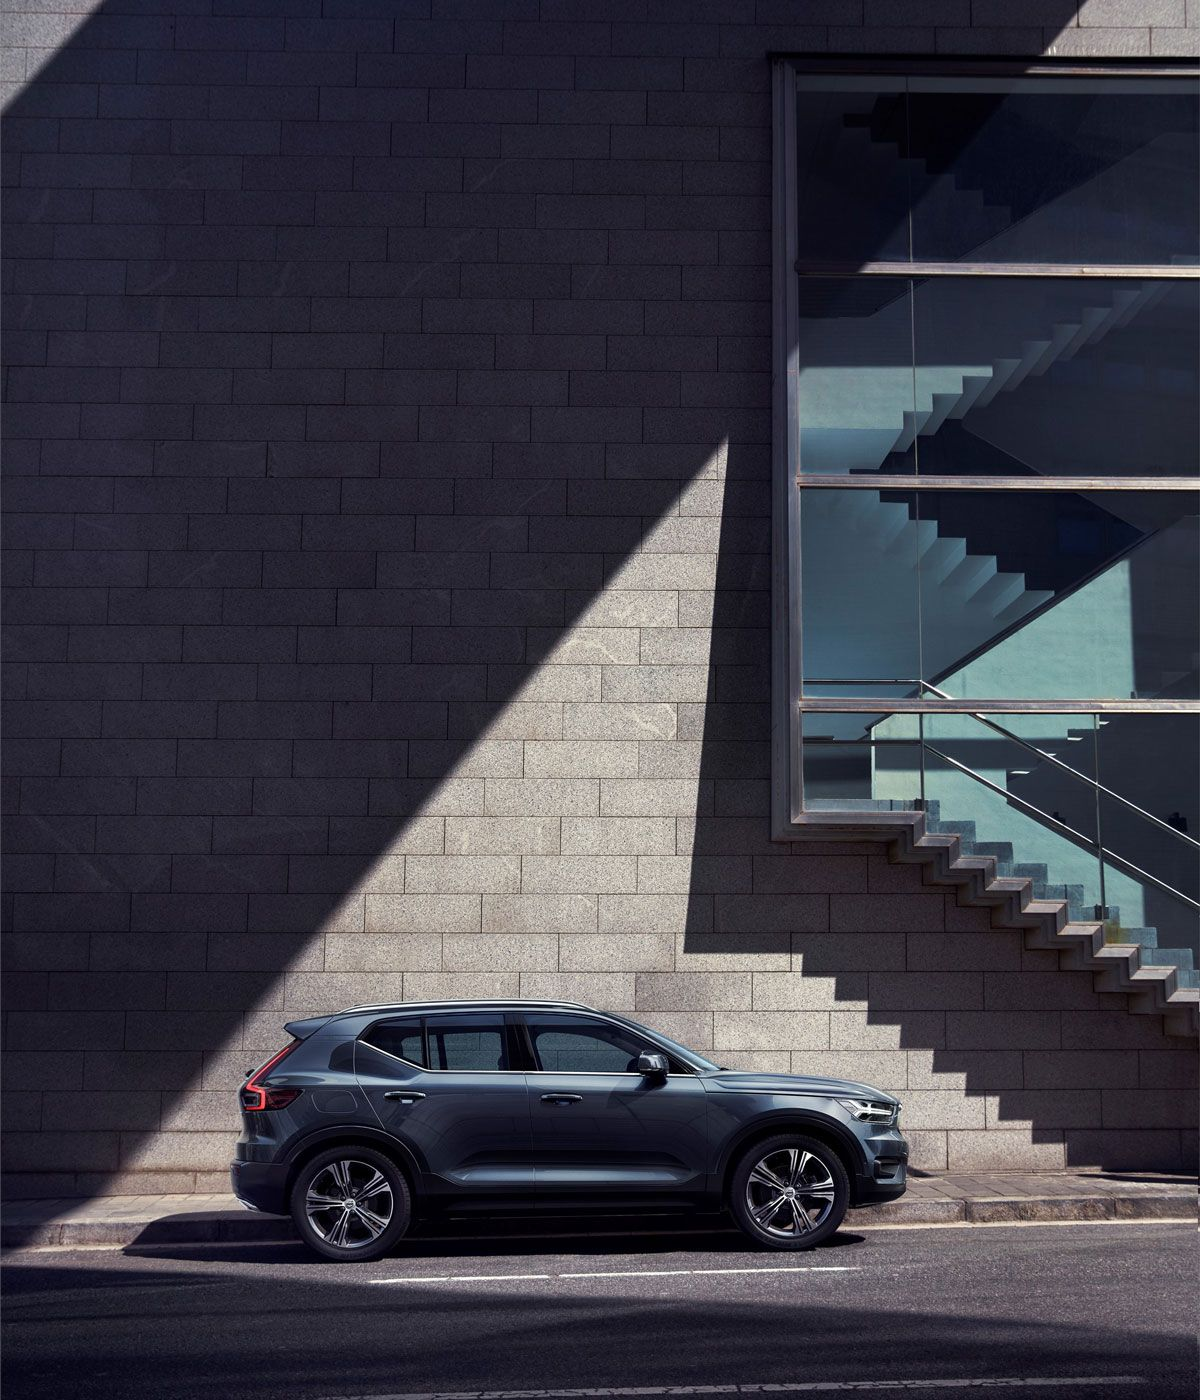 1200x1400 The new Volvo XC40 review and testdrive | Wallpaper*